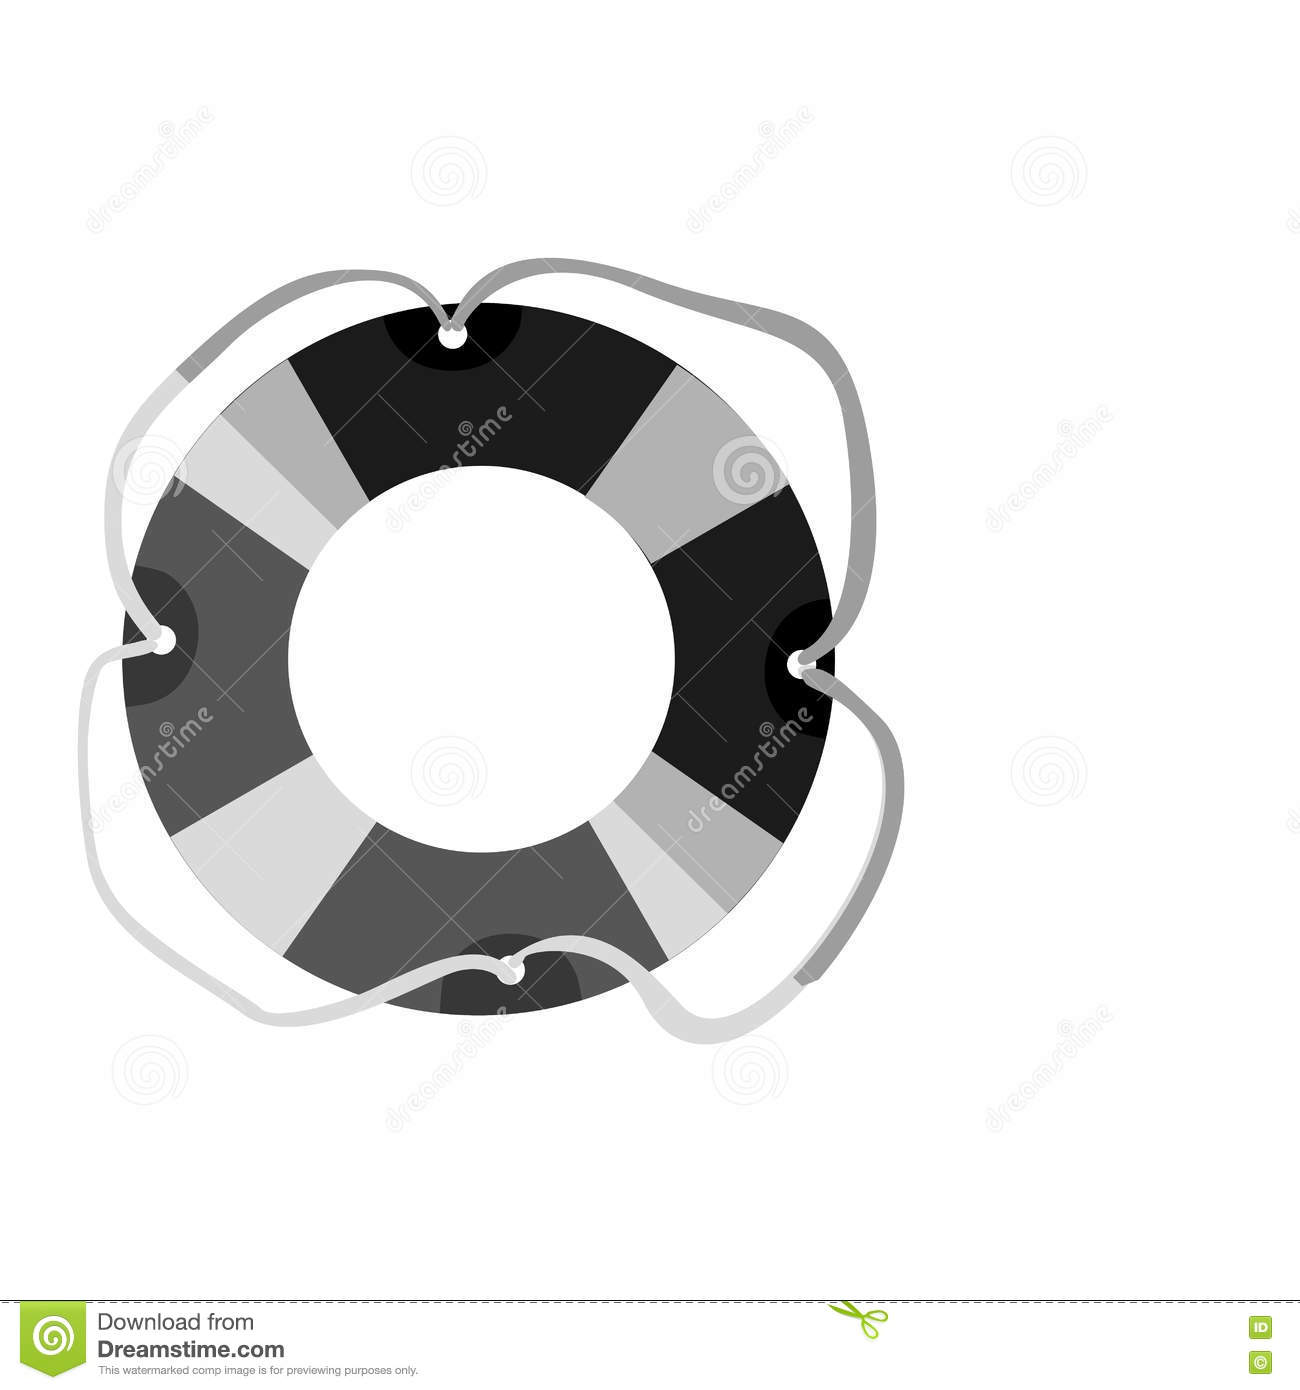 946969819acf Lifeguard float icon over white background. summer vacation design. vector  illustration. More similar stock illustrations